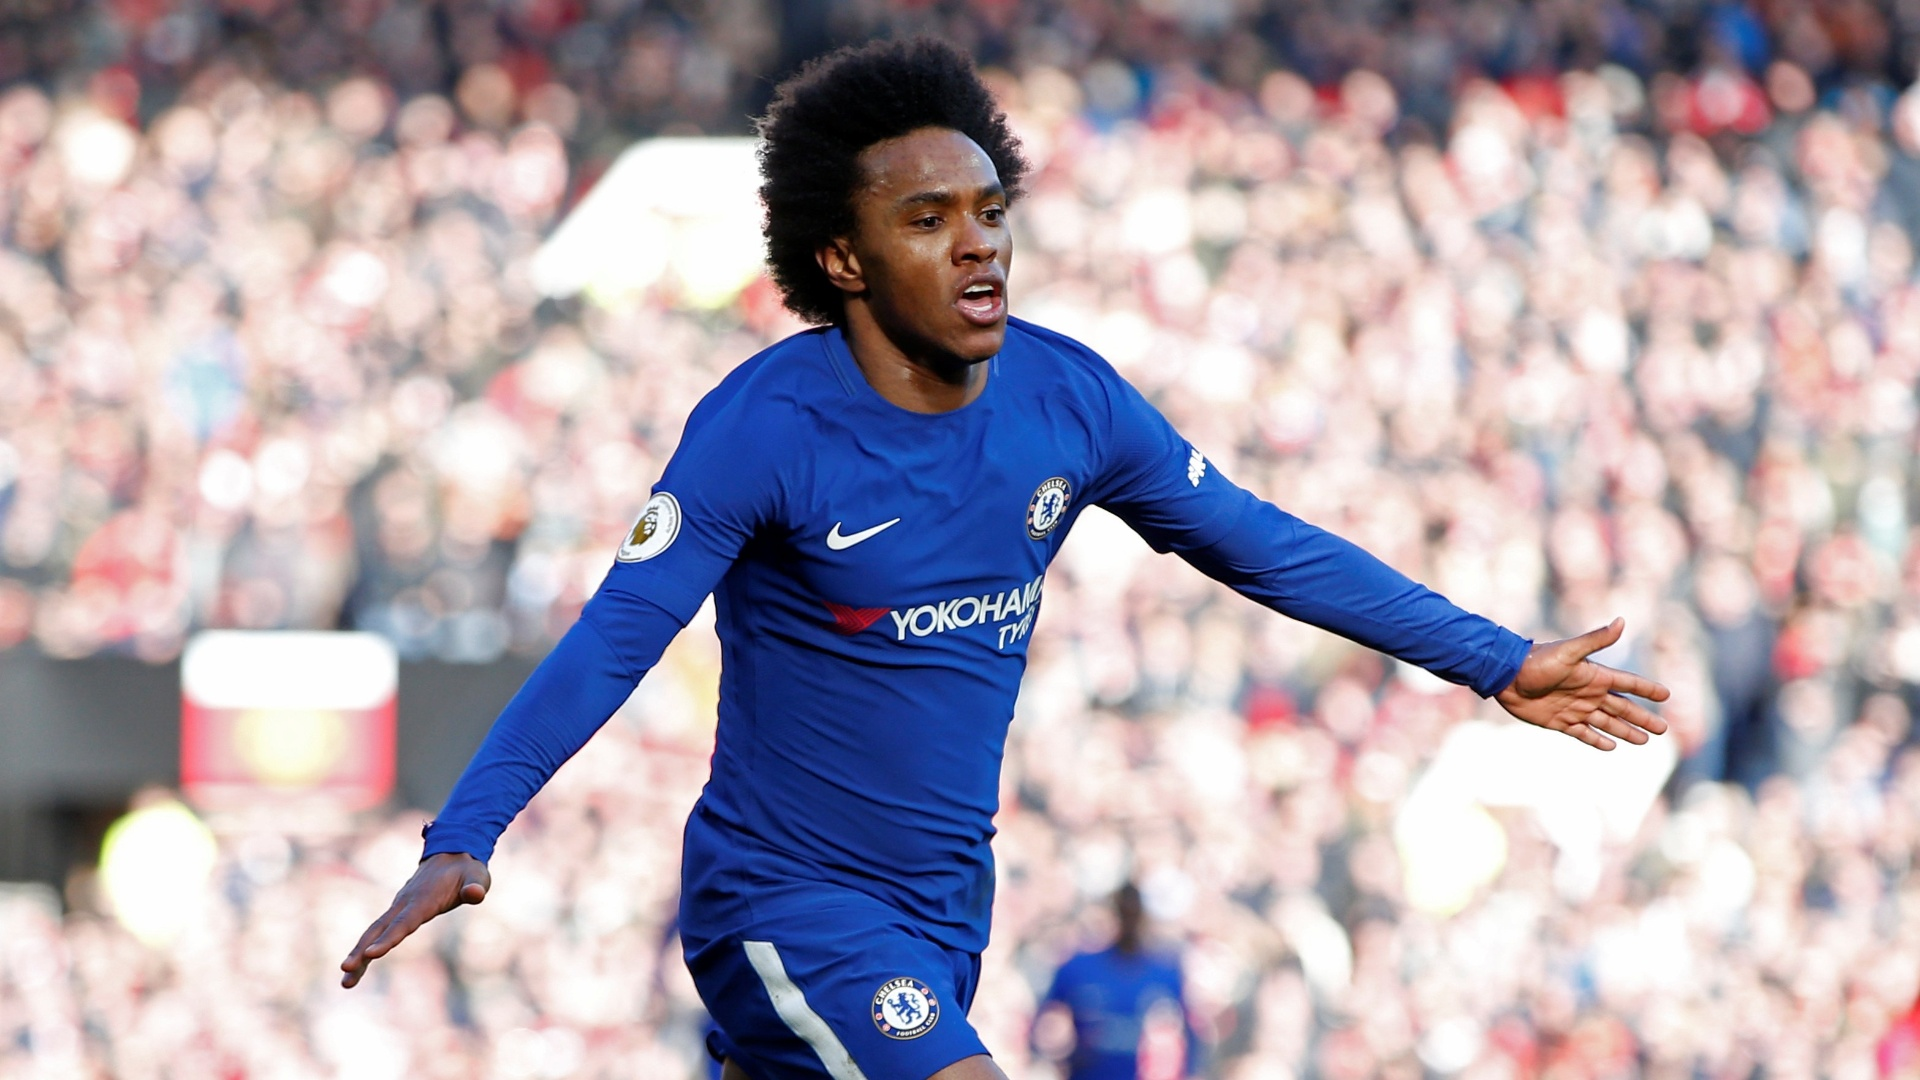 Willian comemora gol do Chelsea contra o Manchester United